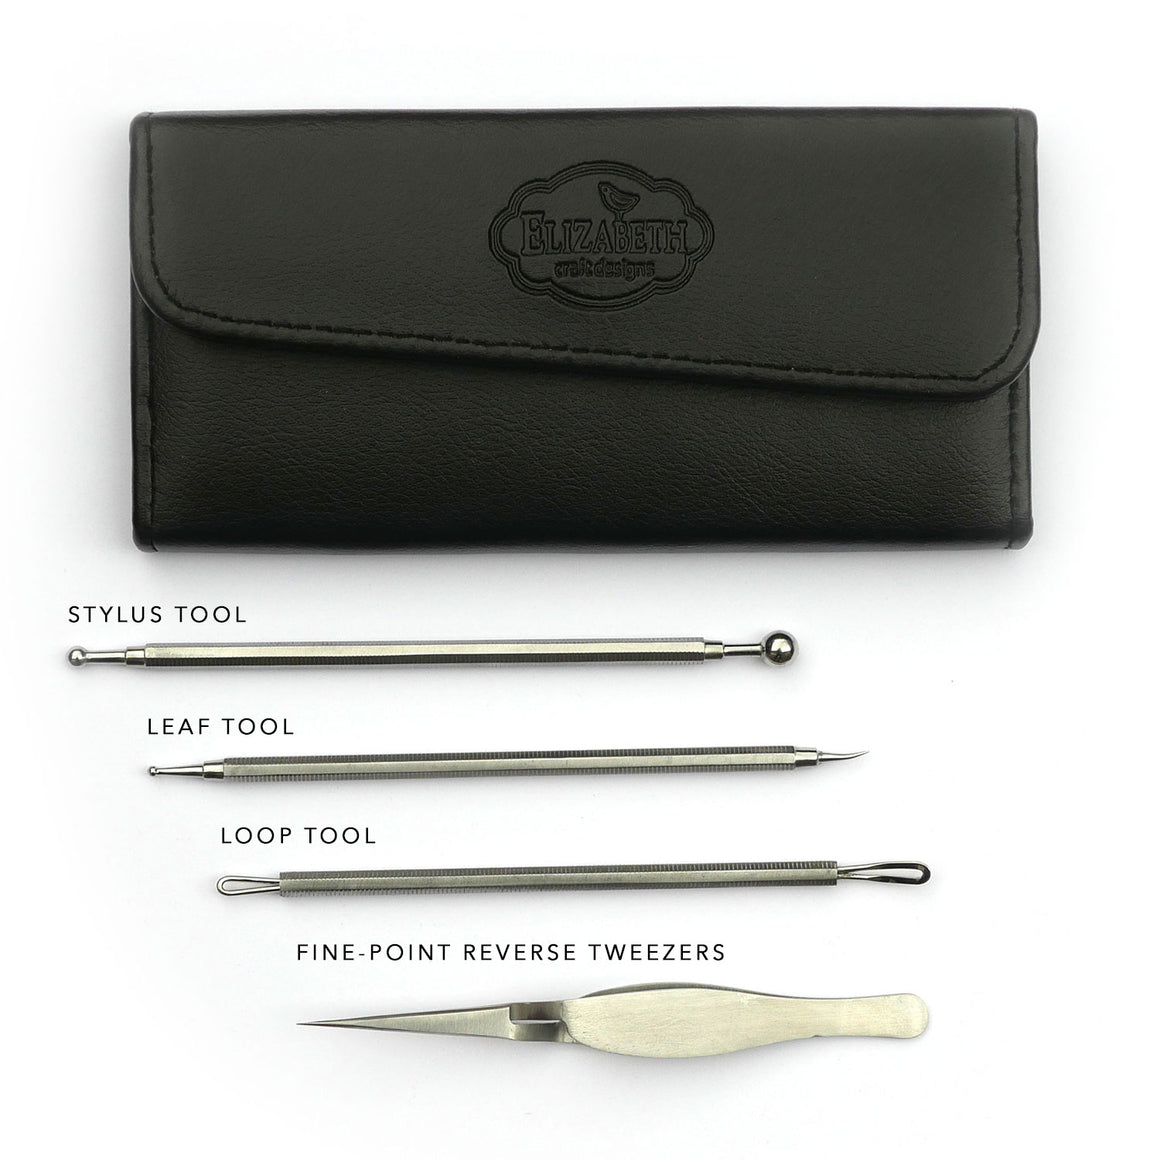 Susan's Garden 4pcs. All metal Tool Set in Luxury Case